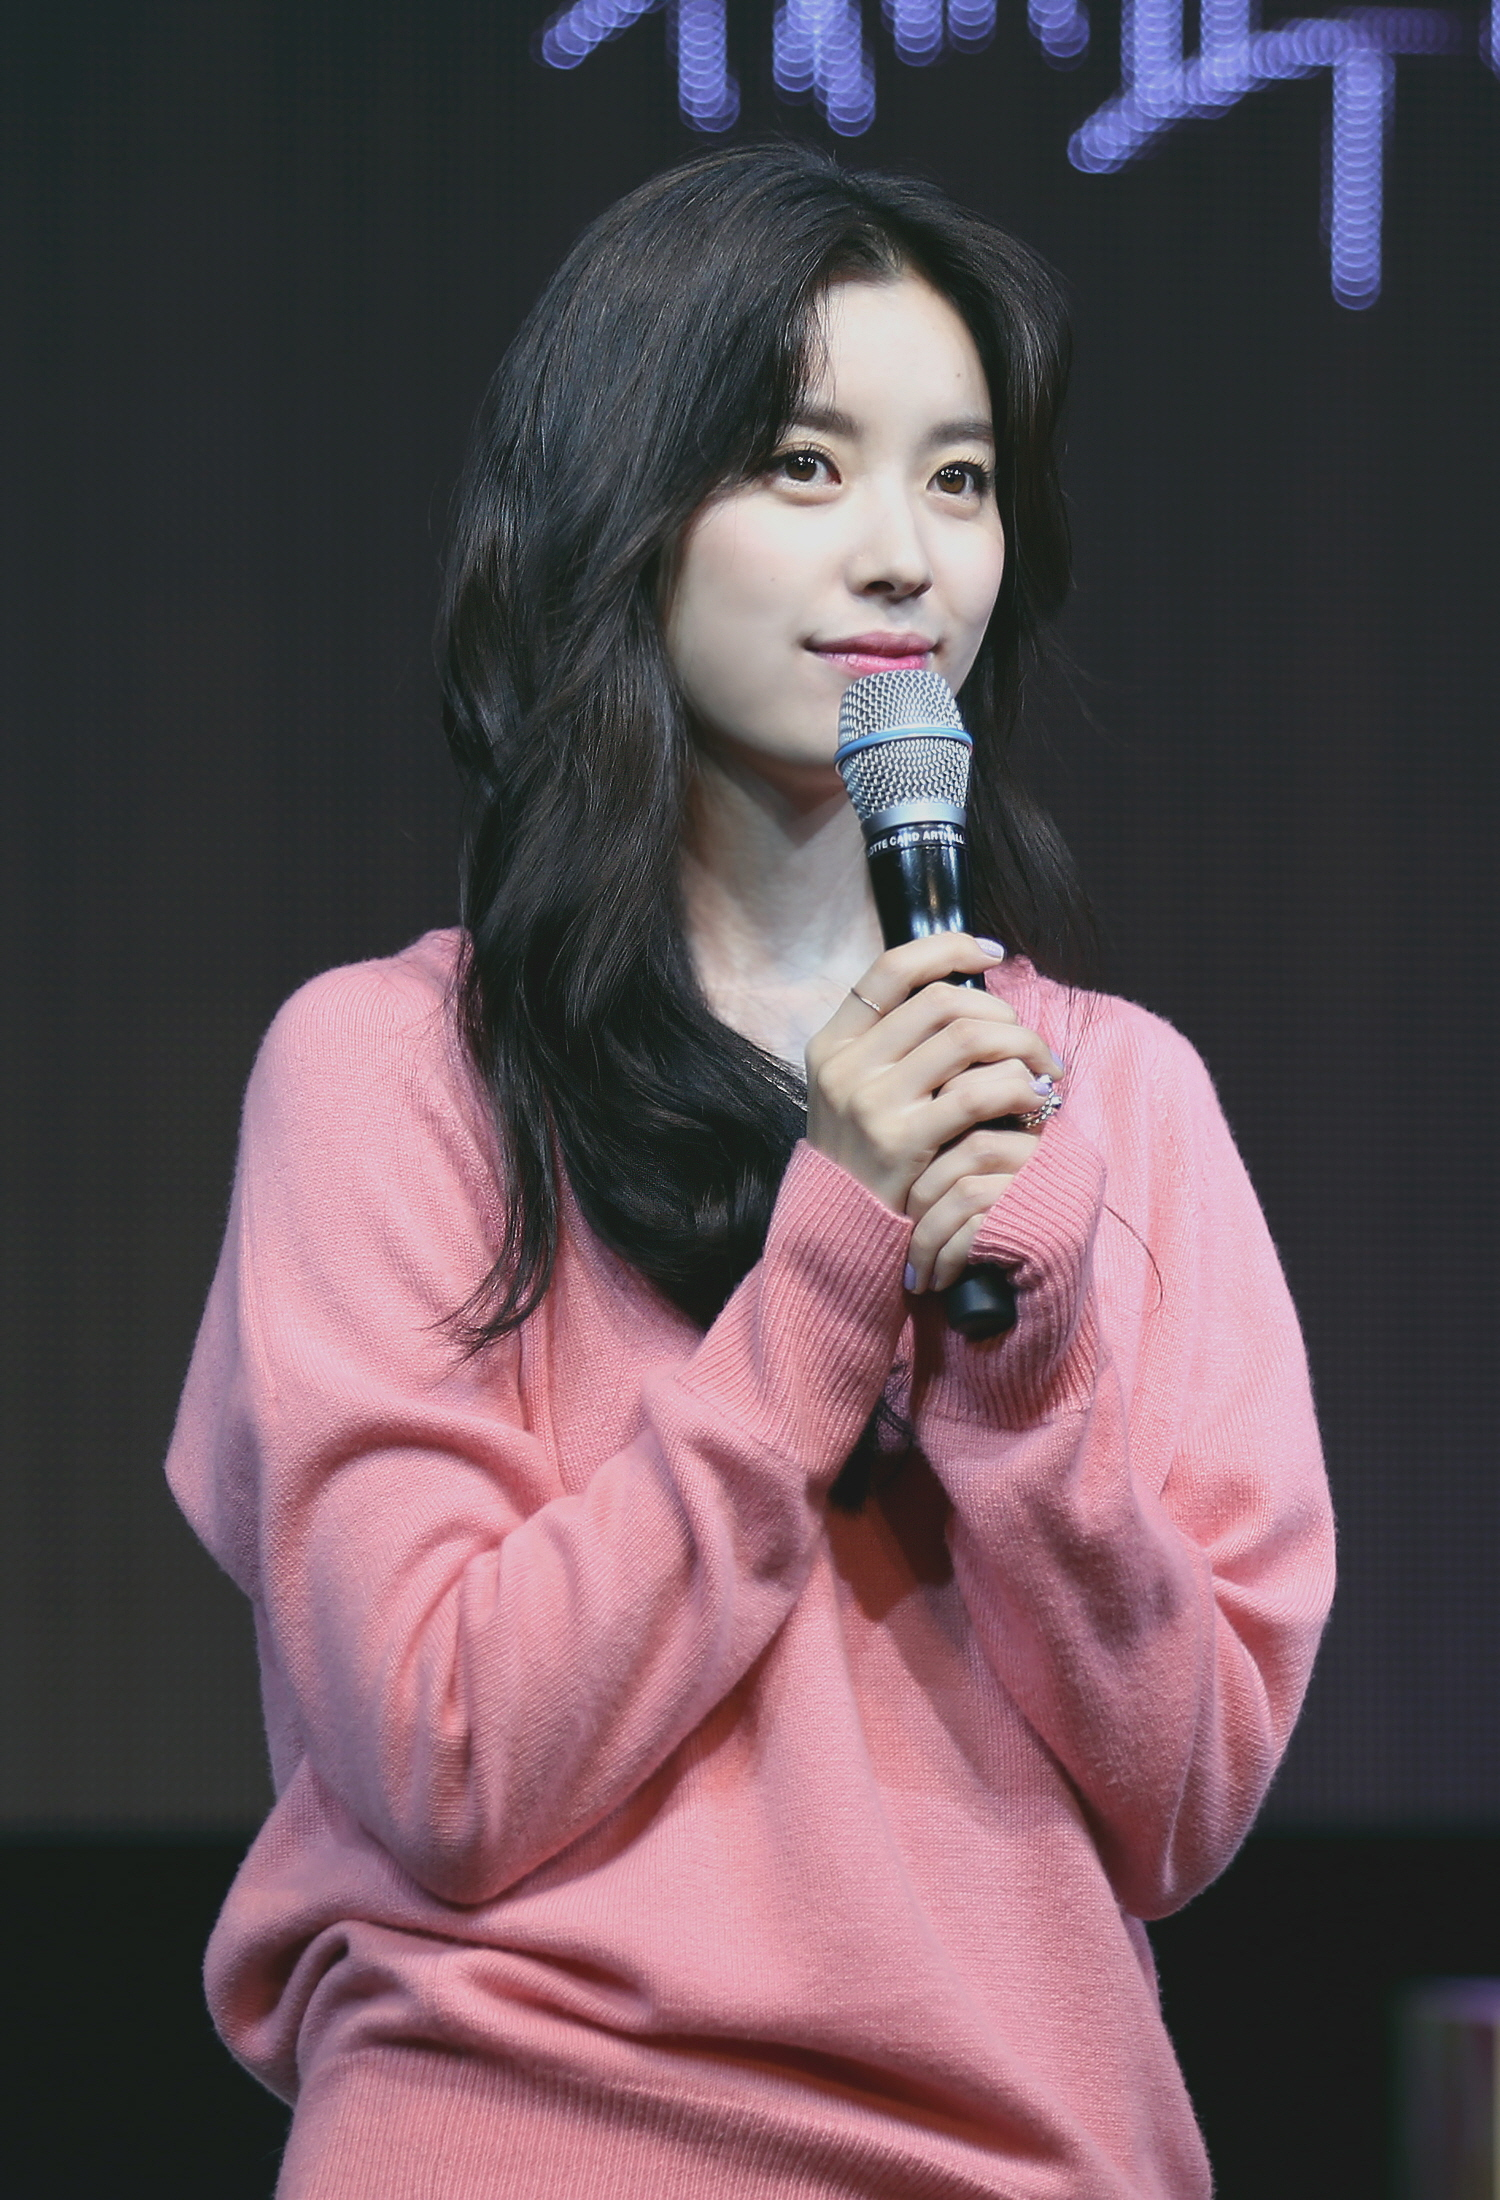 The 31-year old daughter of father (?) and mother(?) Han Hyo Joo in 2018 photo. Han Hyo Joo earned a  million dollar salary - leaving the net worth at 2 million in 2018